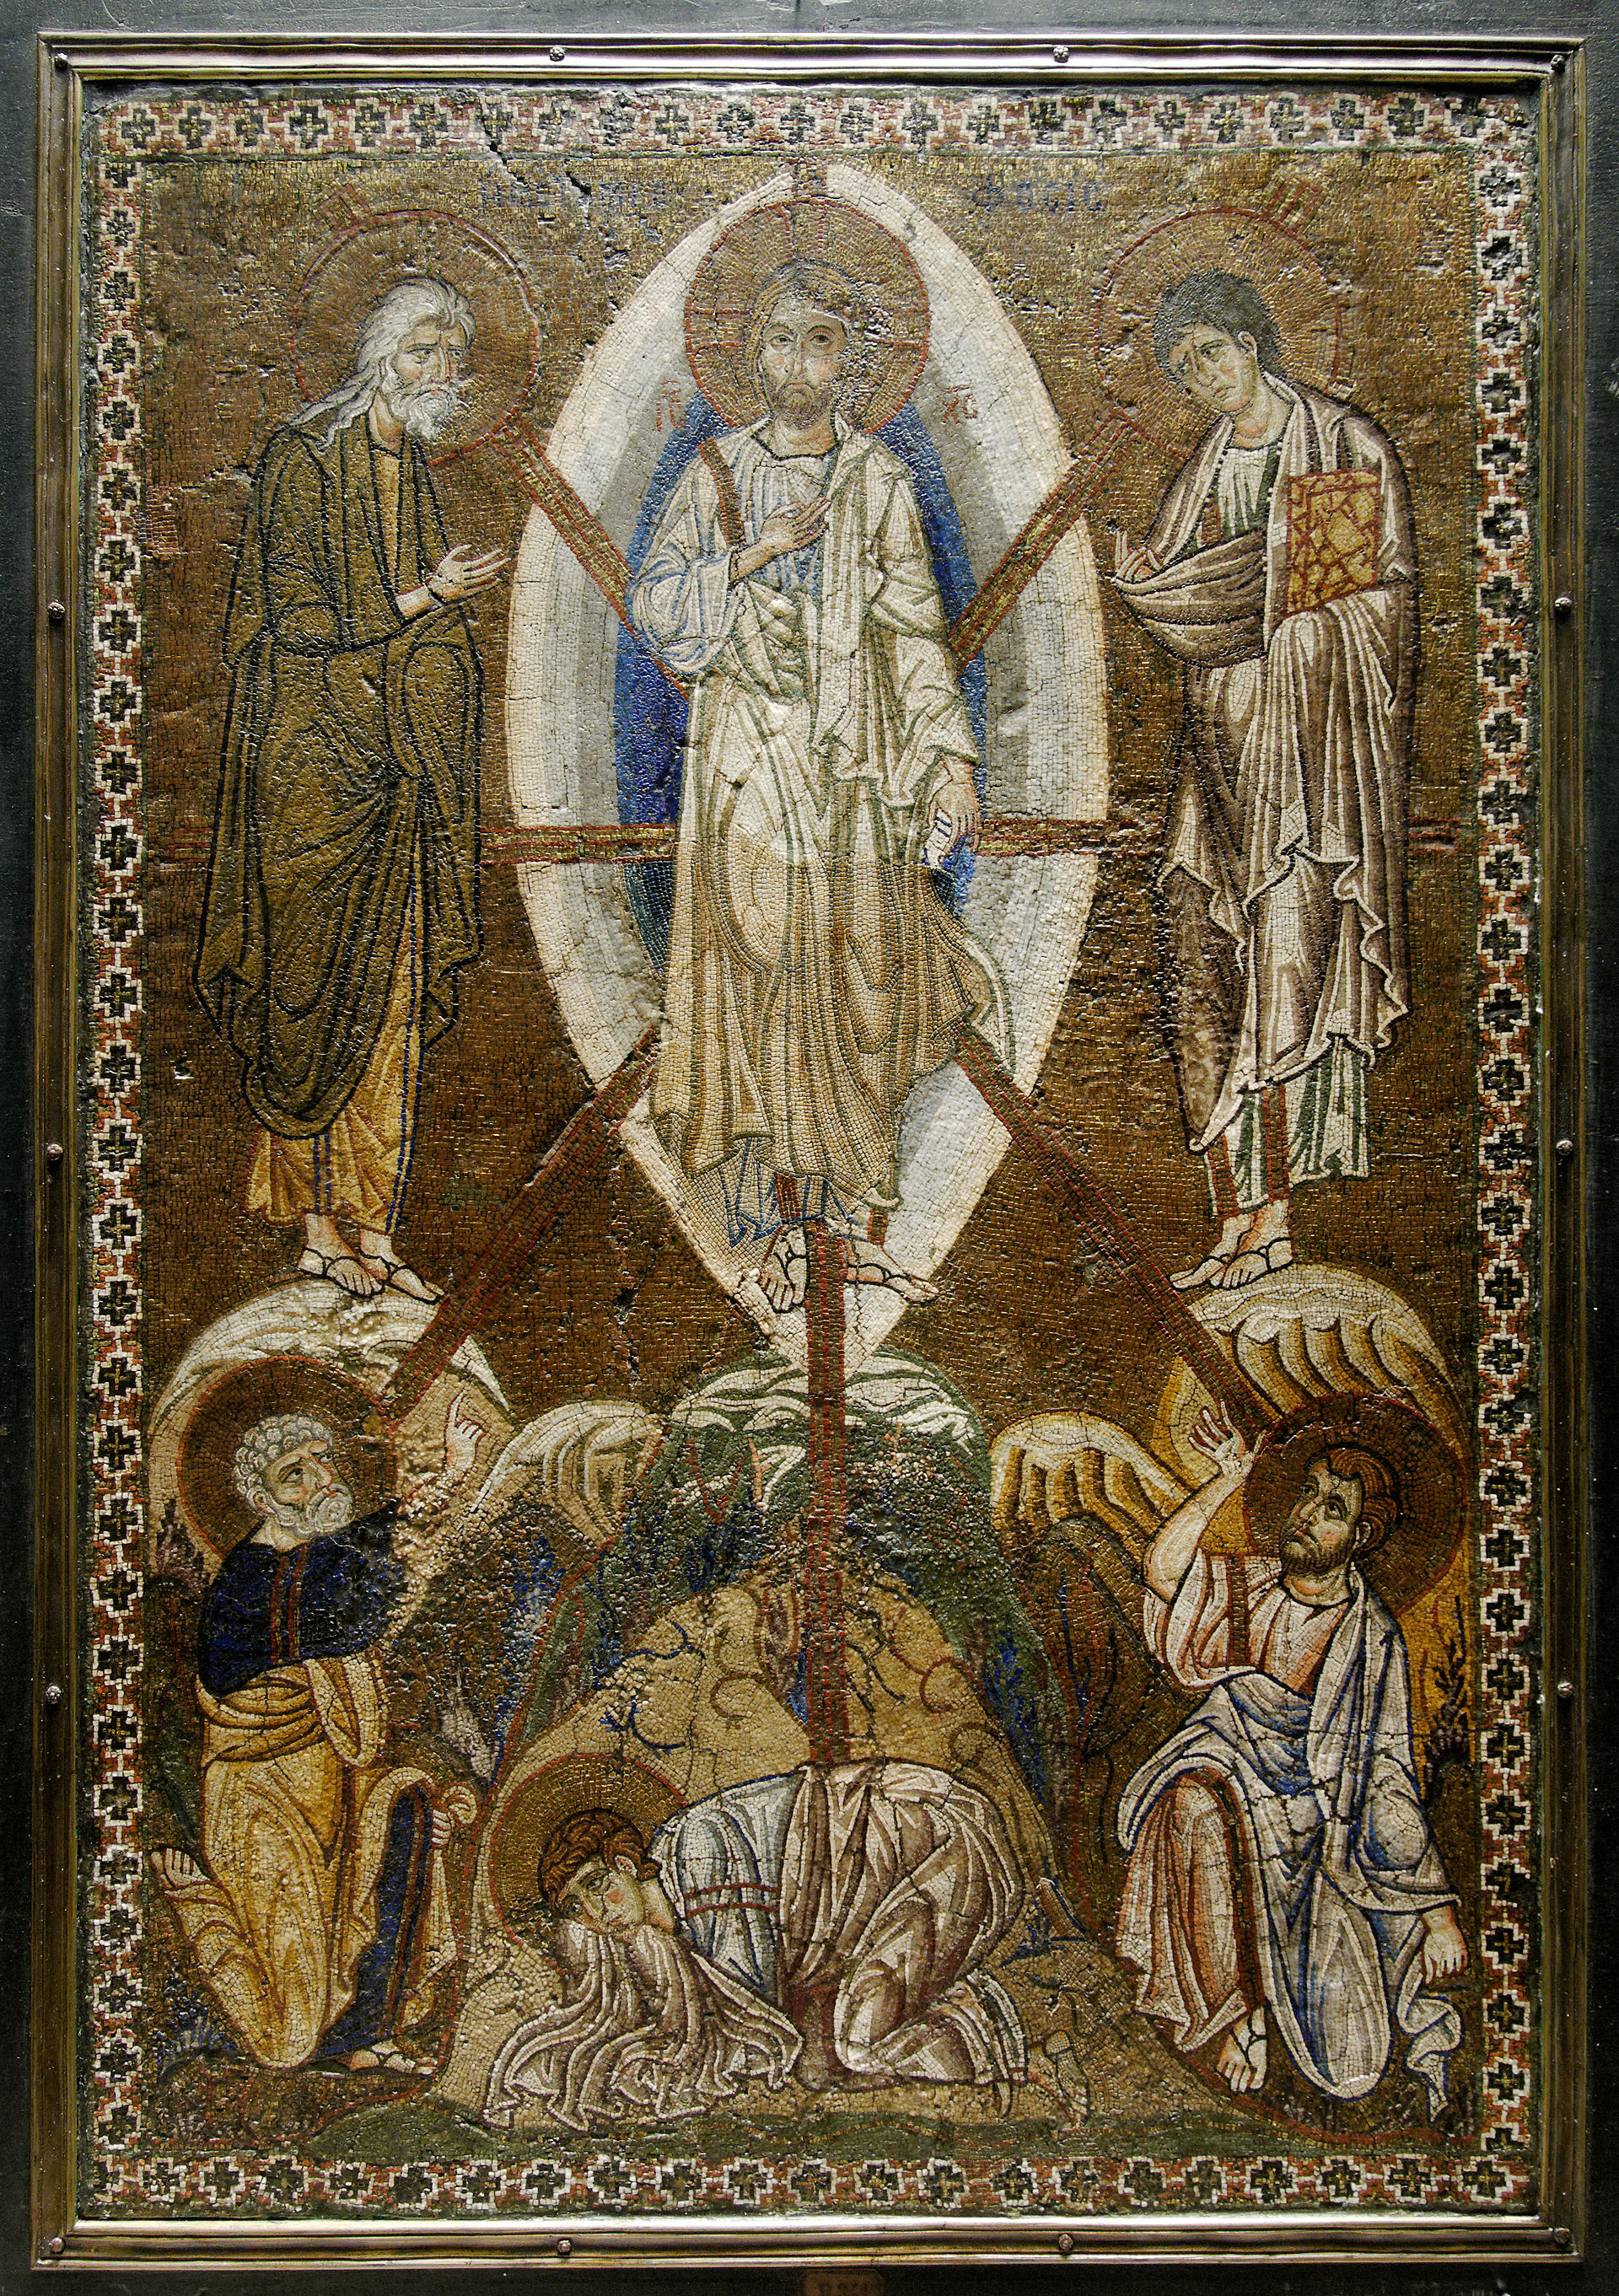 Transfiguration of Jesus - Wikipedia